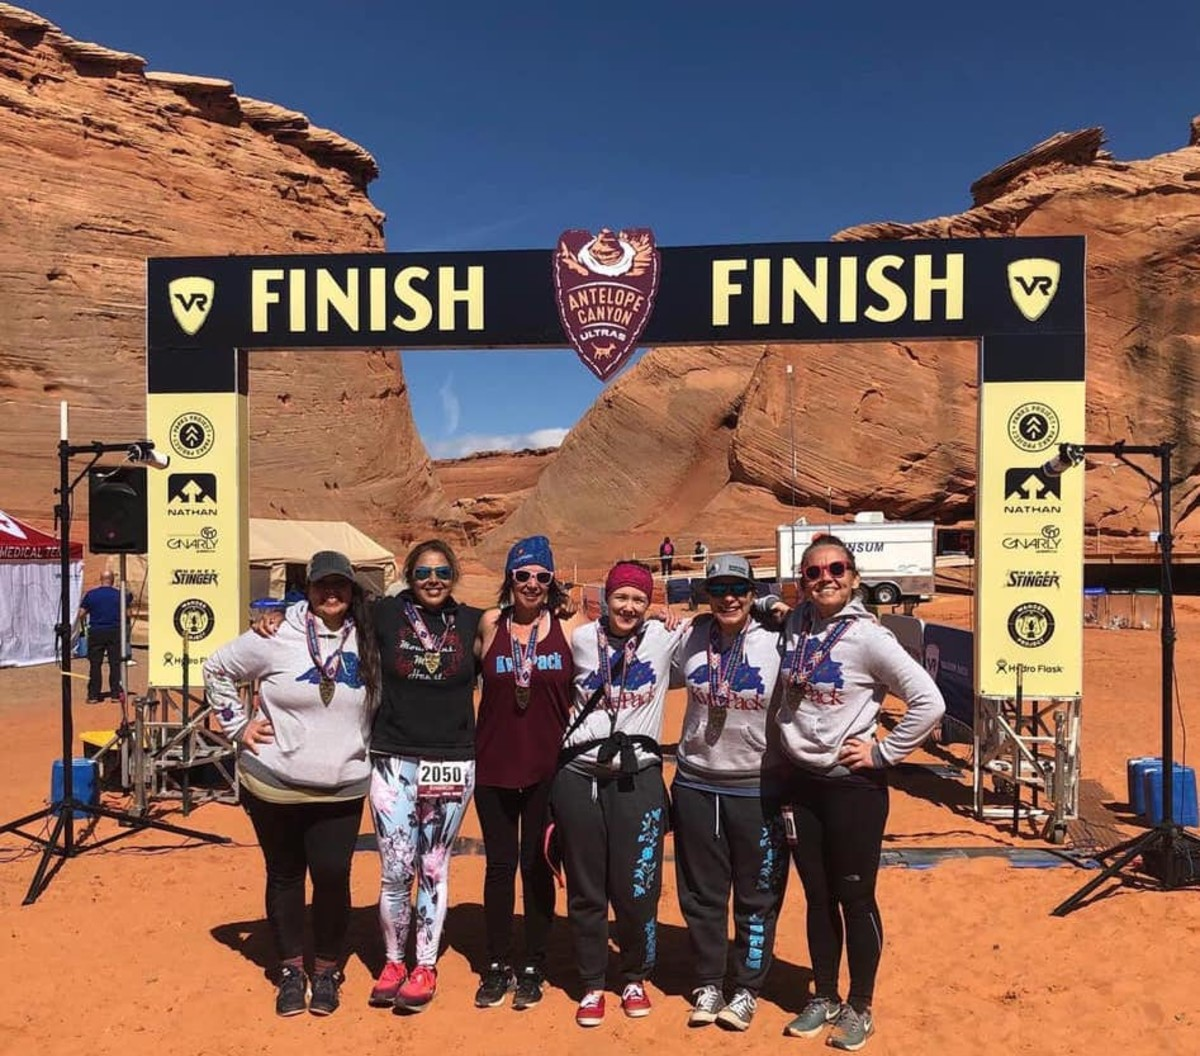 Members of the Kwe Pack celebrating recently at the finish line of the Antelope Canyon Half-Marathon. Left to right: Chally Topping, Sharon Avery, Jen Trotterchaude, Melissa Walls, Alicia Kozlowski Cyr, and Sarah Agaton Howes.